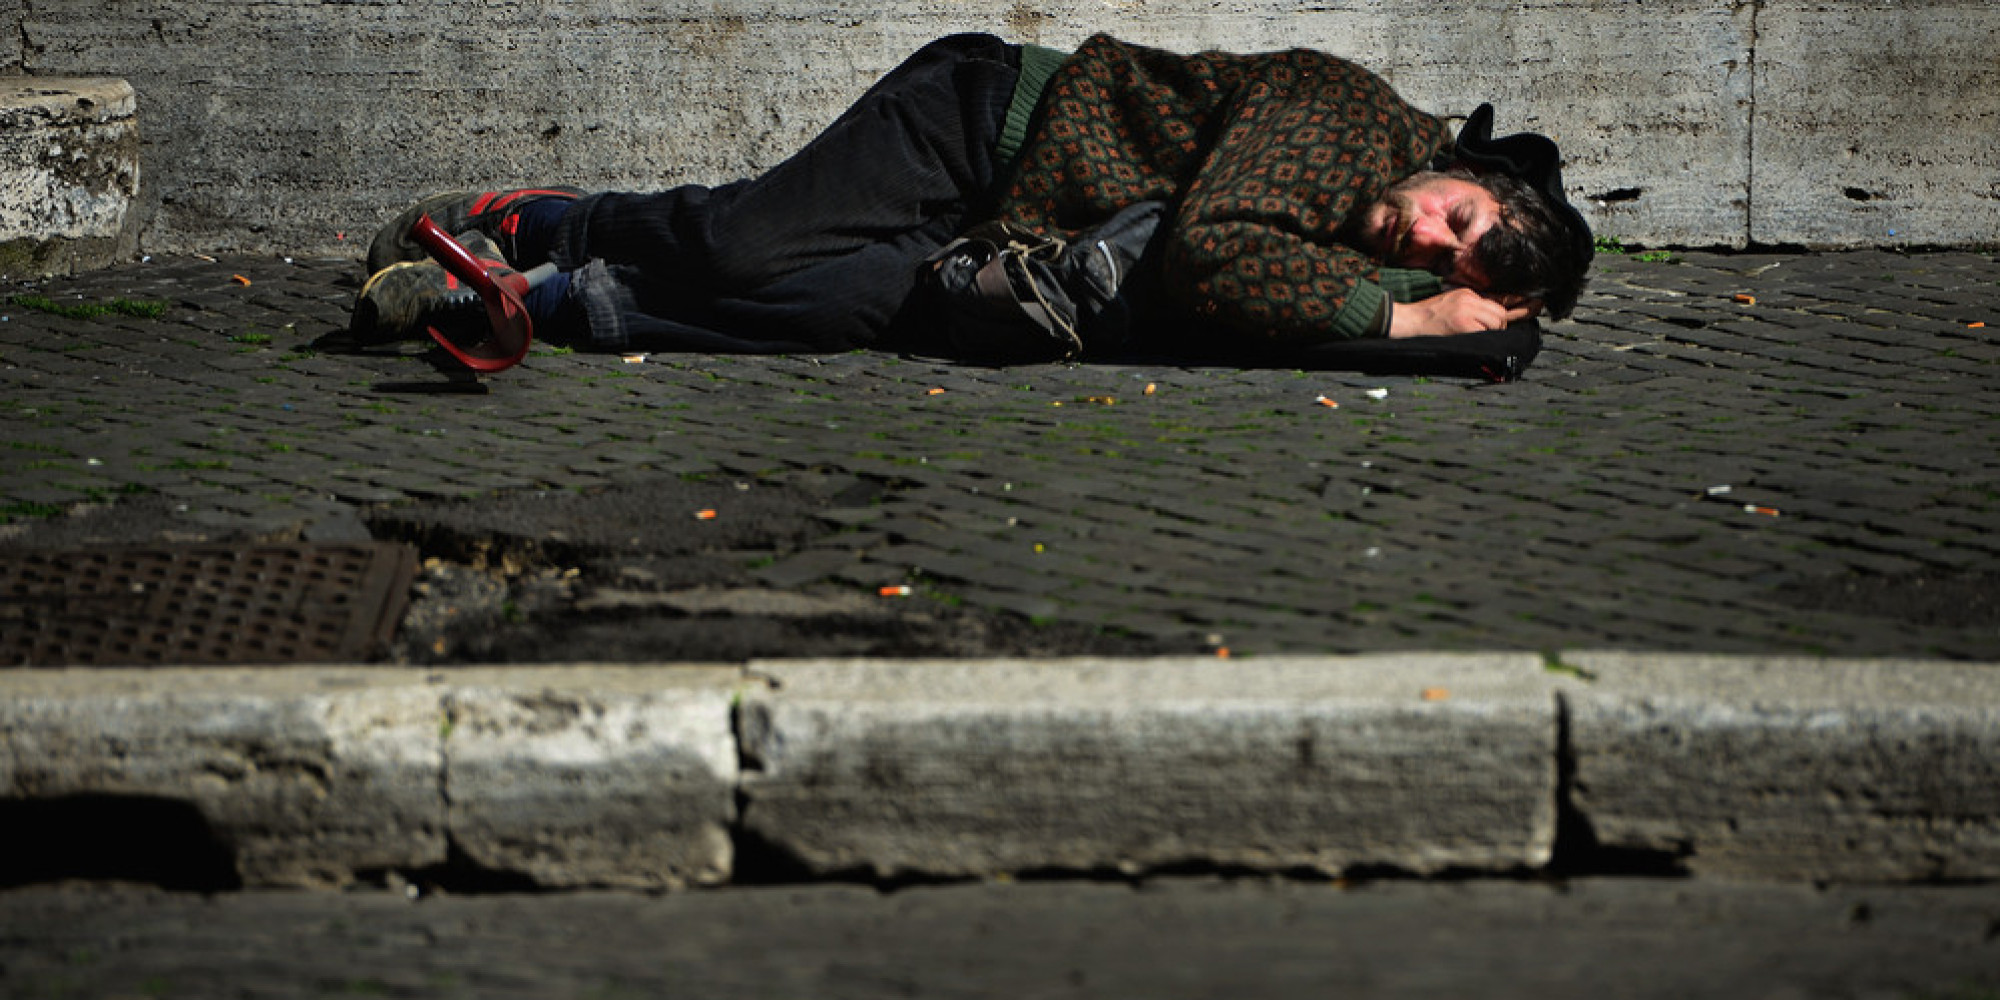 an analysis of homelessness as sleeping on the streets Homelessness: causes, culture and community development as a solution kaitlin philipps cost-benefit analysis of proposed rehabilitation programs these people sleep on the streets.